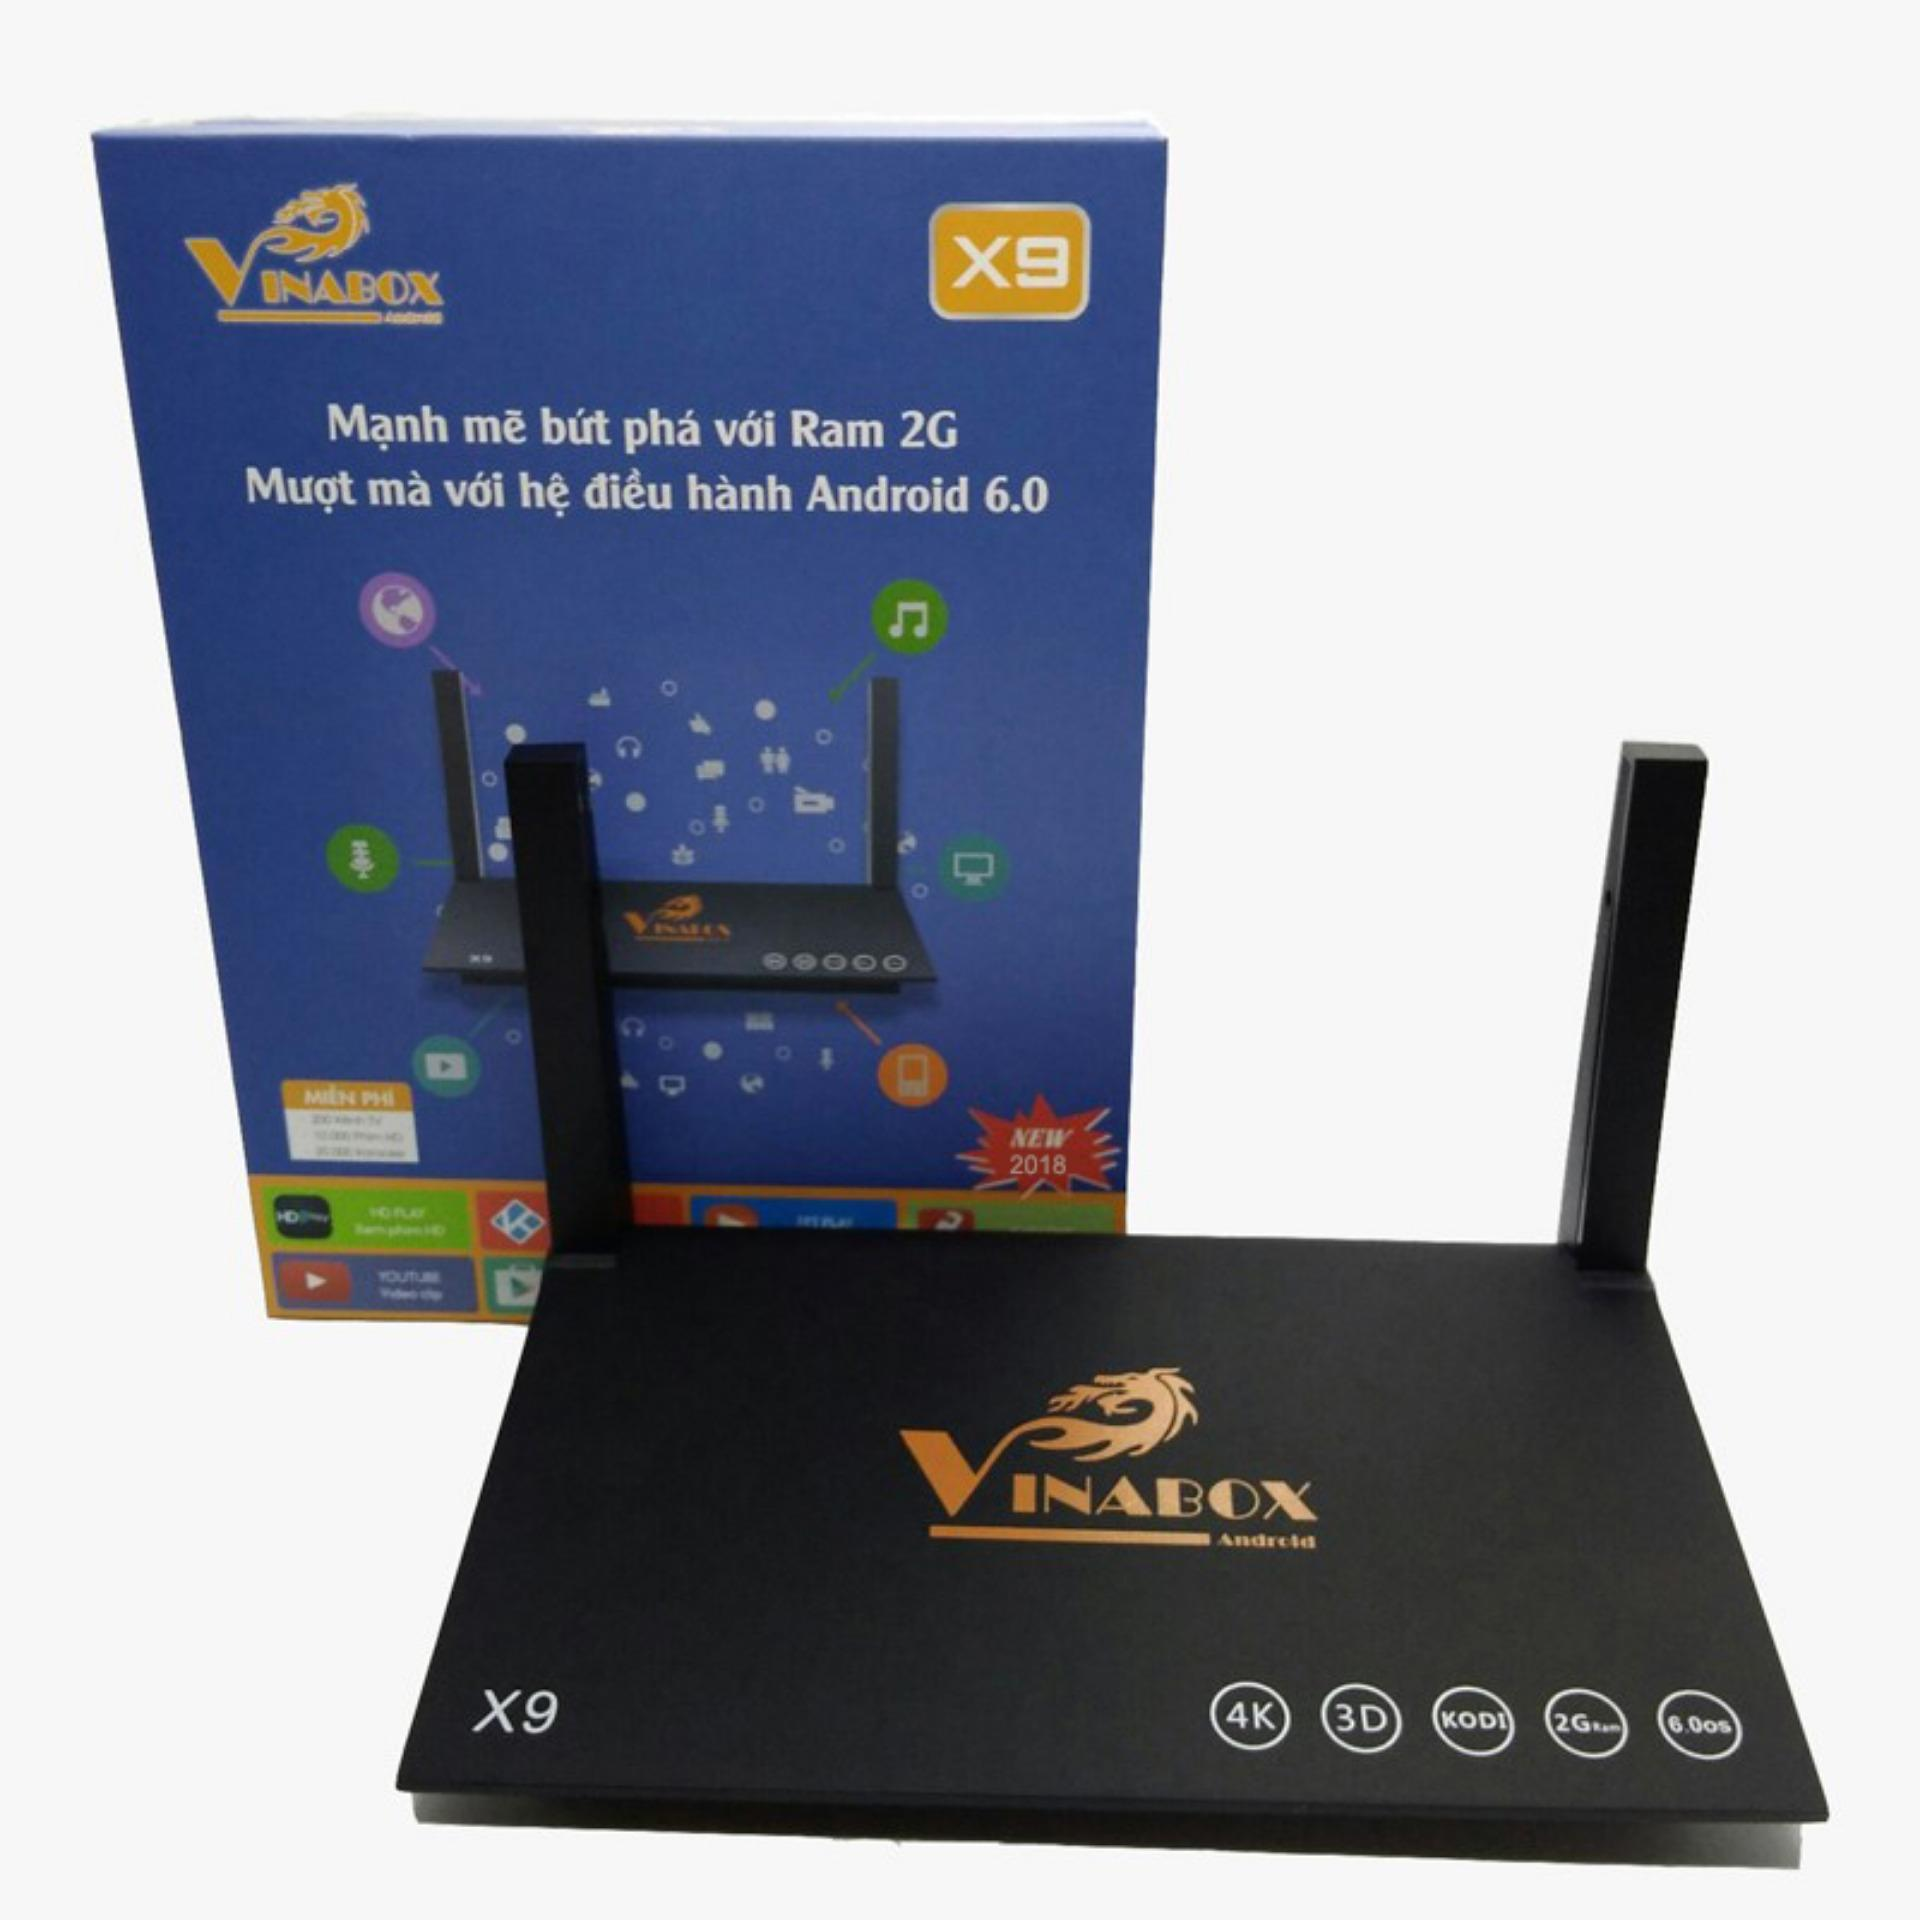 Android Tv Vinabox X9 2018 Ram 2Gb Android 6 Long An Chiết Khấu